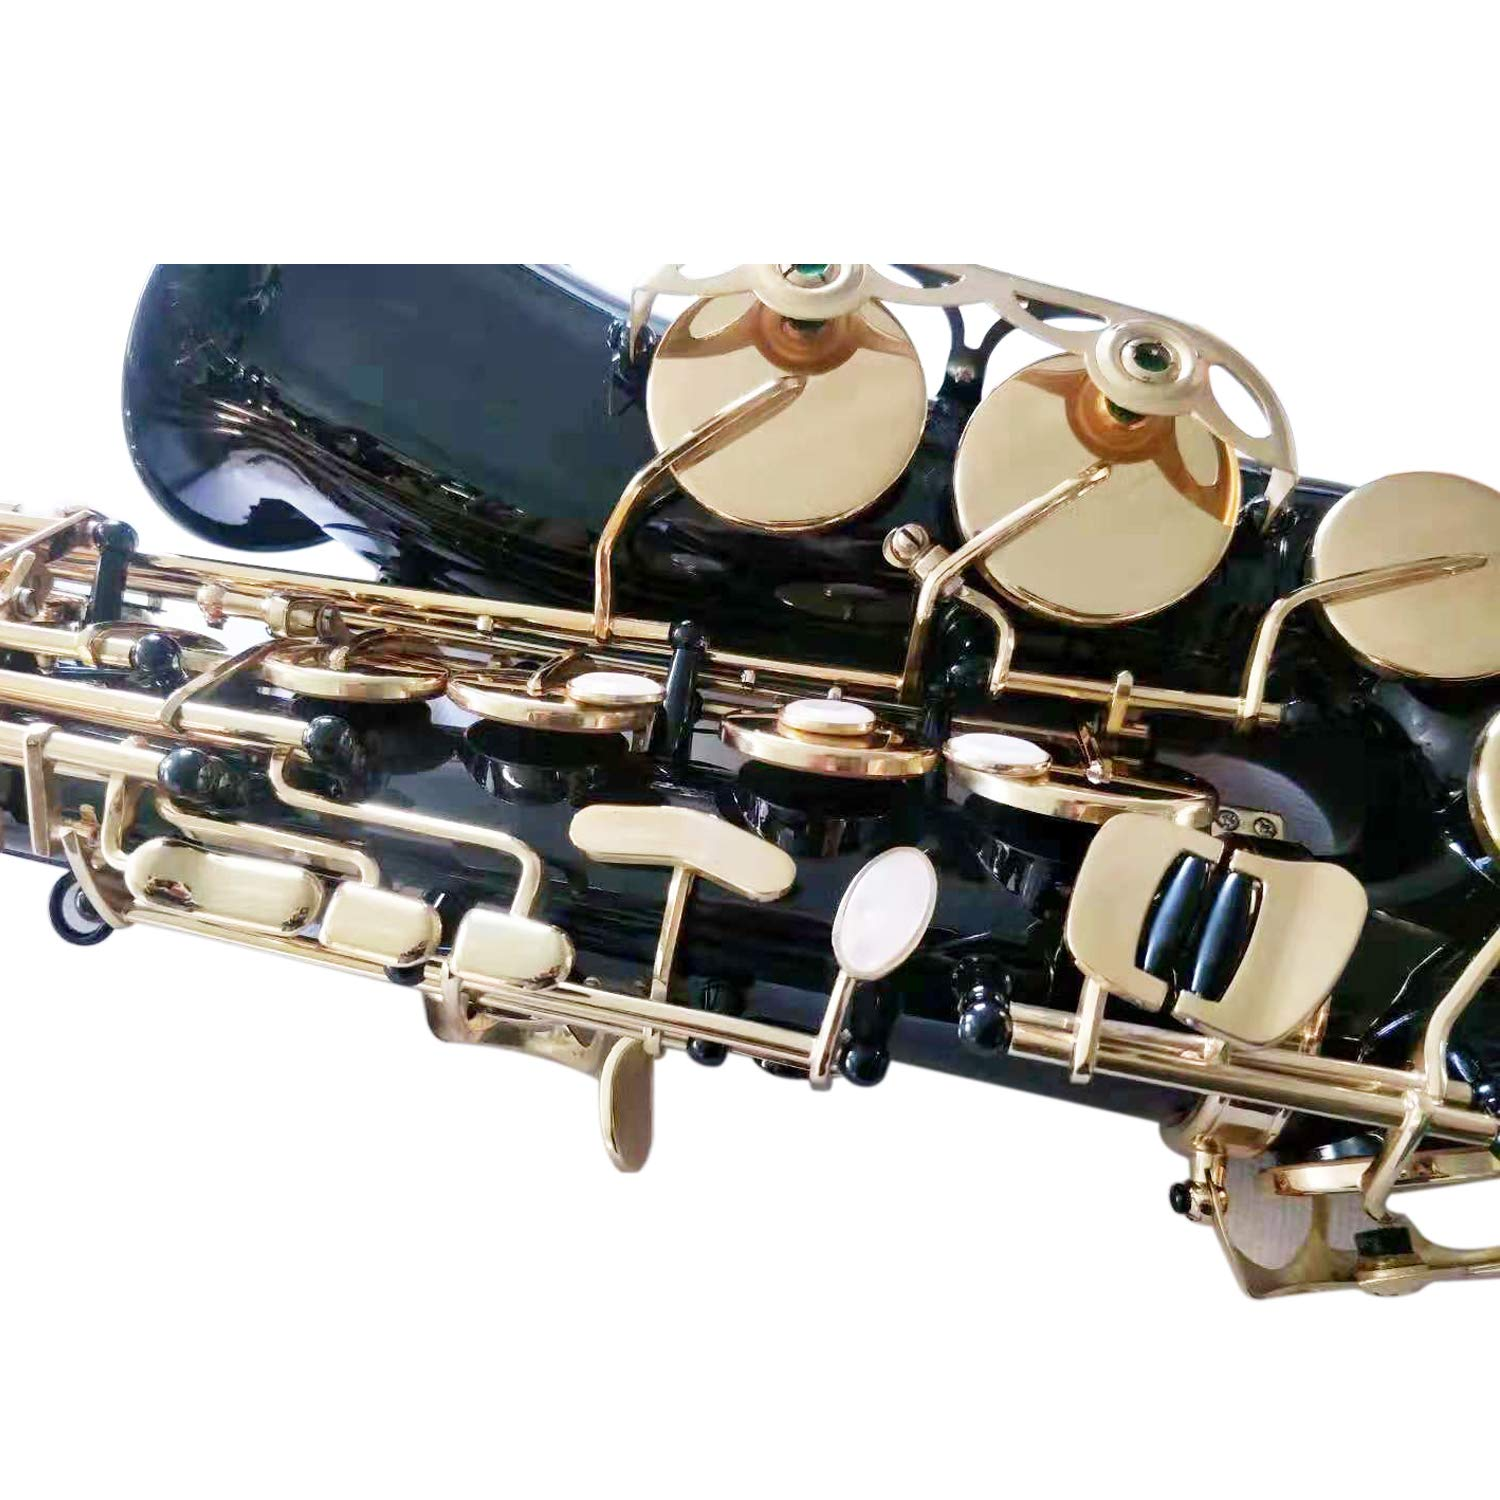 Flanger F-980 Black Nickel Plated Keys E Flat Professional Alto Saxophone with Tuner, Case, Mouthpiece by Flanger (Image #3)